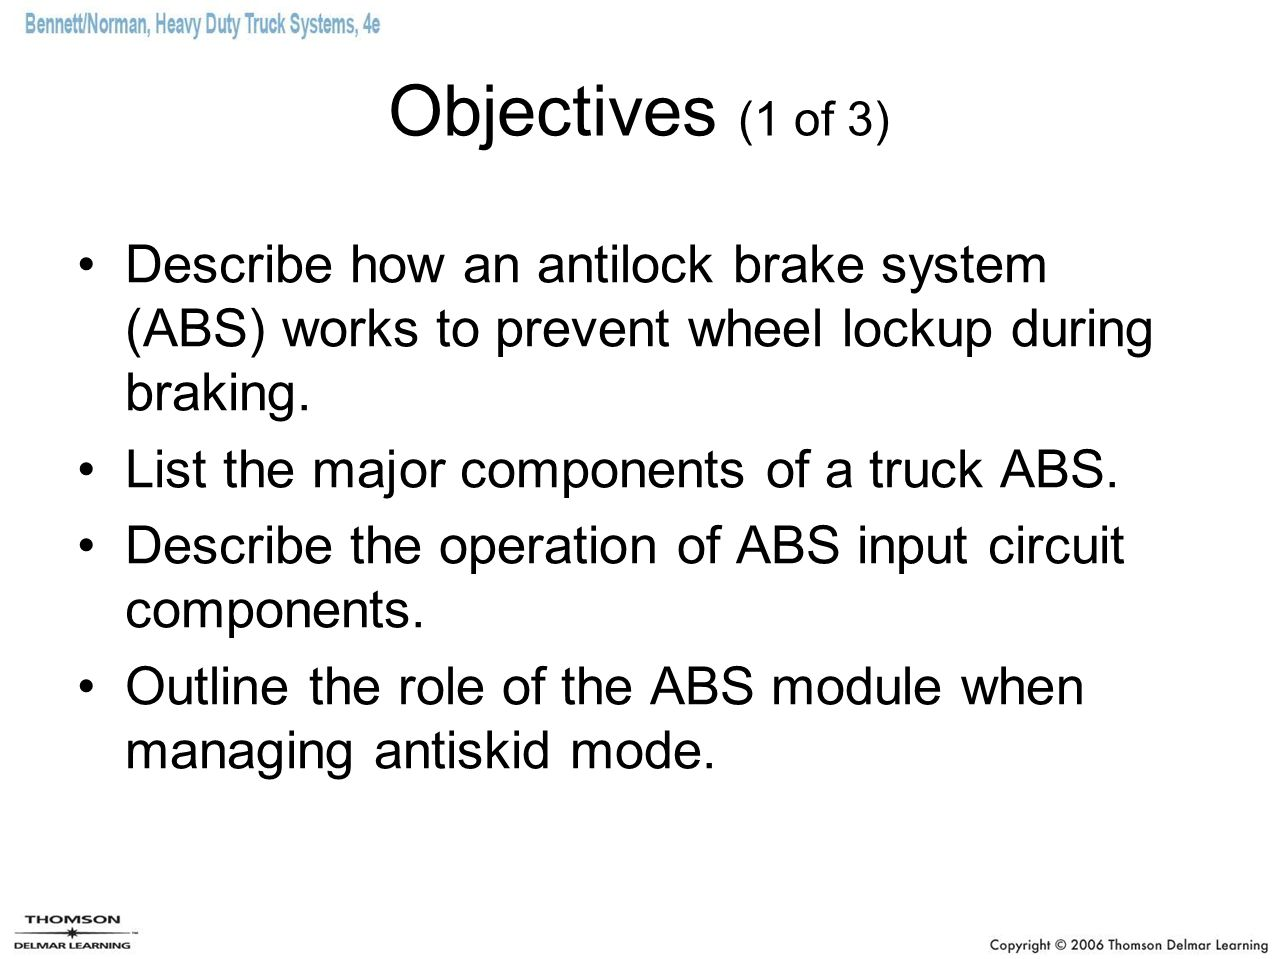 Objectives (1 of 3) Describe how an antilock brake system (ABS) works to prevent wheel lockup during braking.